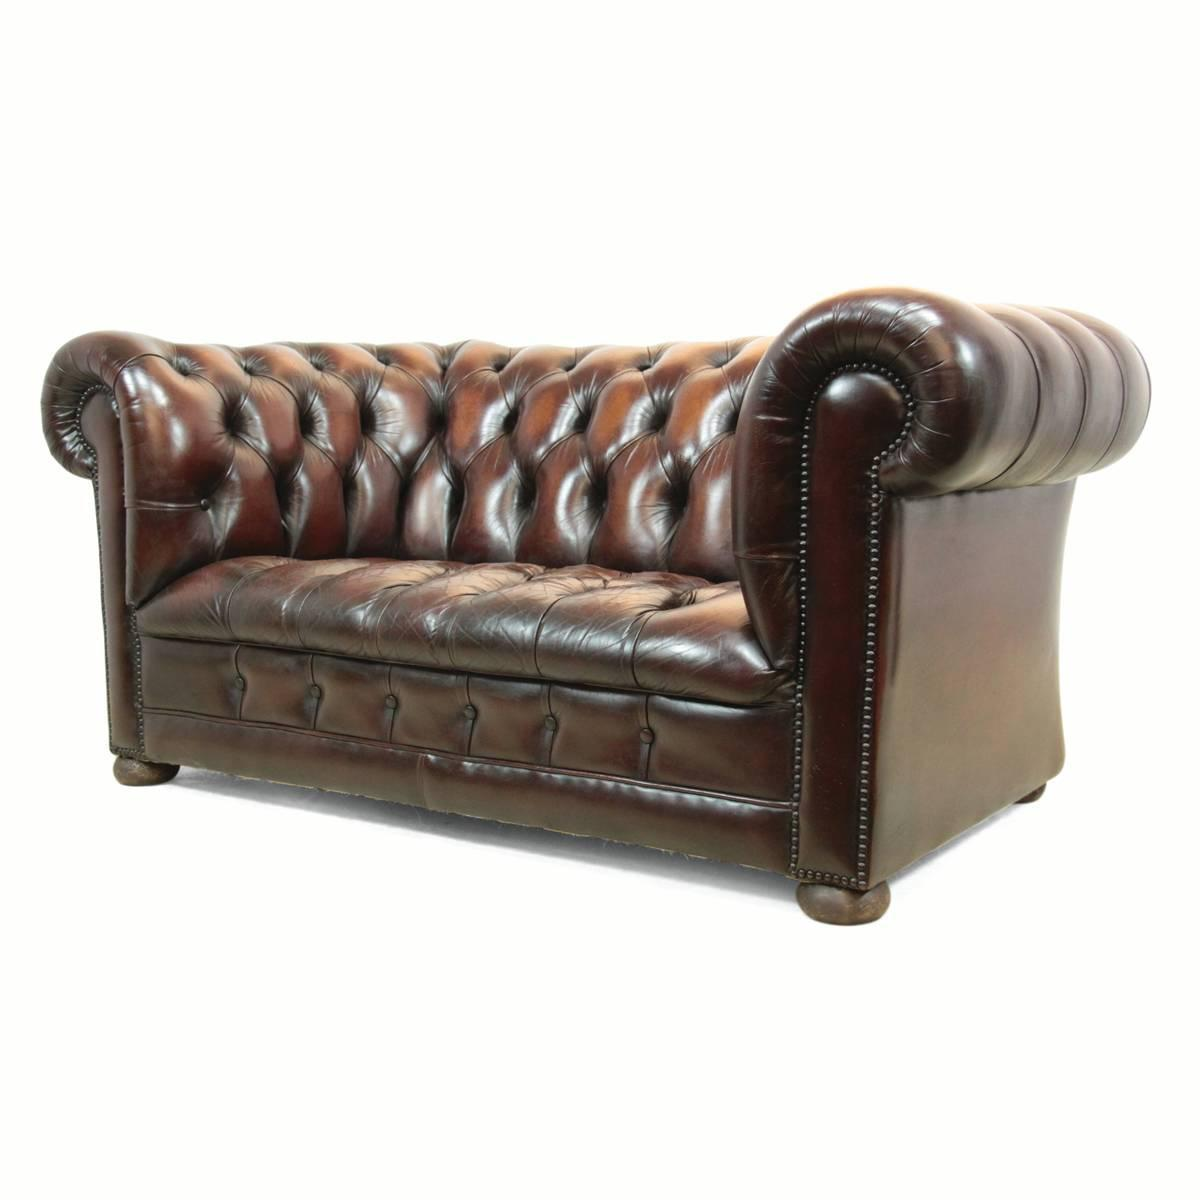 vintage leather chesterfield at 1stdibs. Black Bedroom Furniture Sets. Home Design Ideas